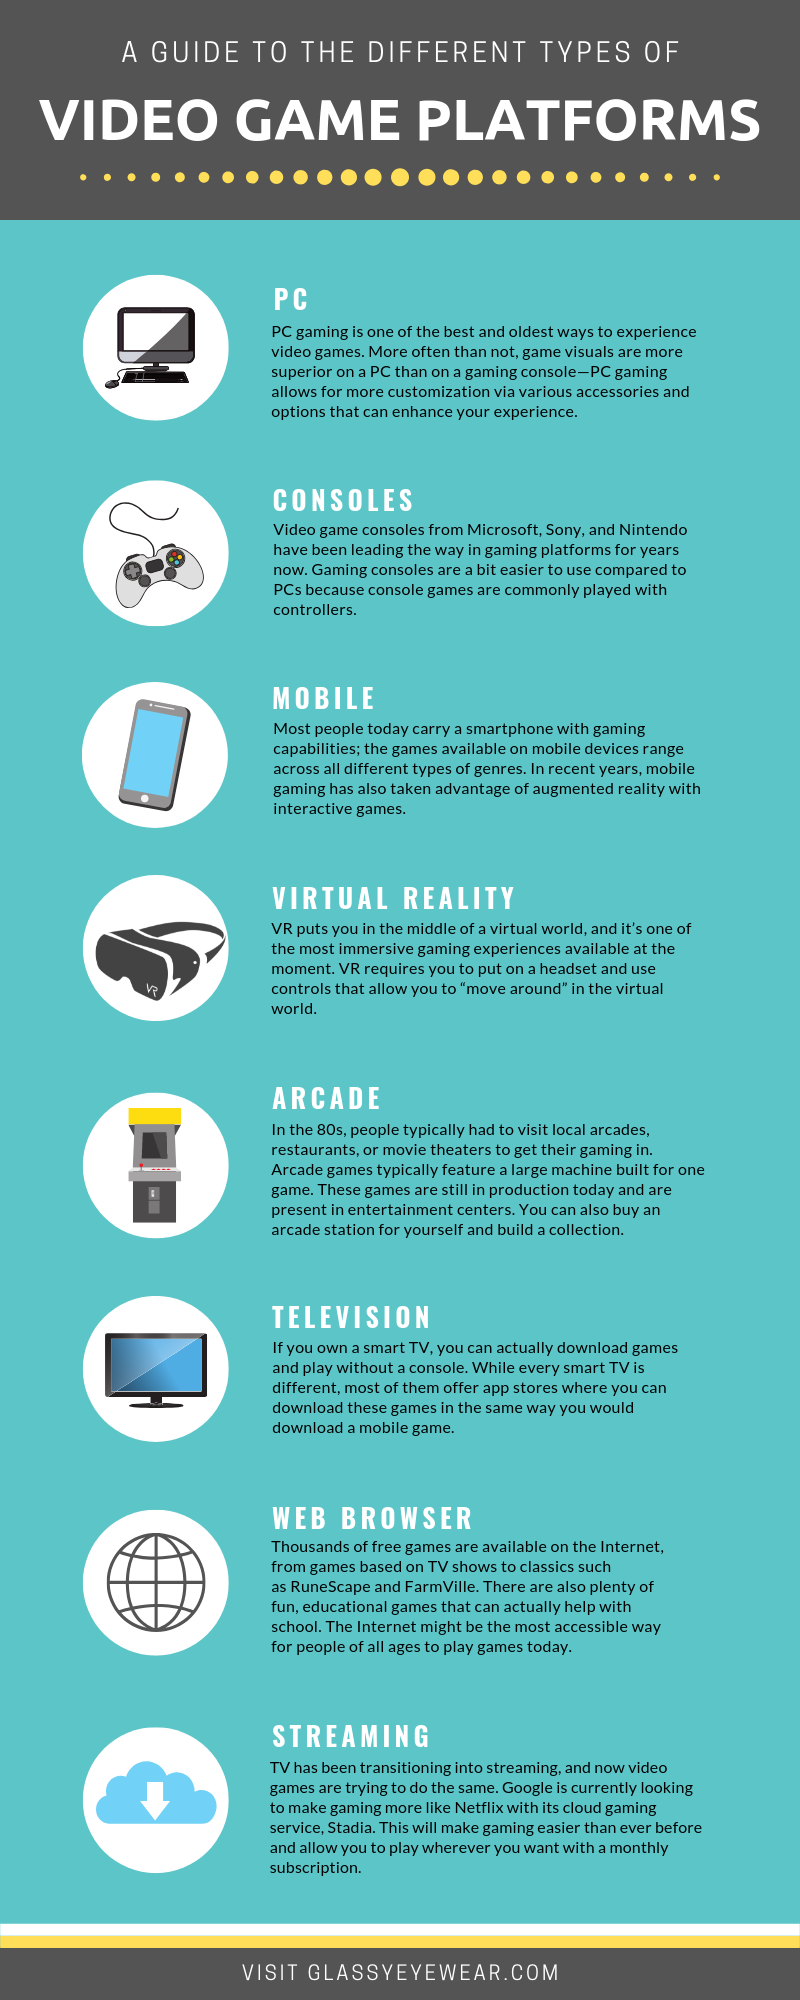 A Guide to the Different Types of Video Game Platforms infographic